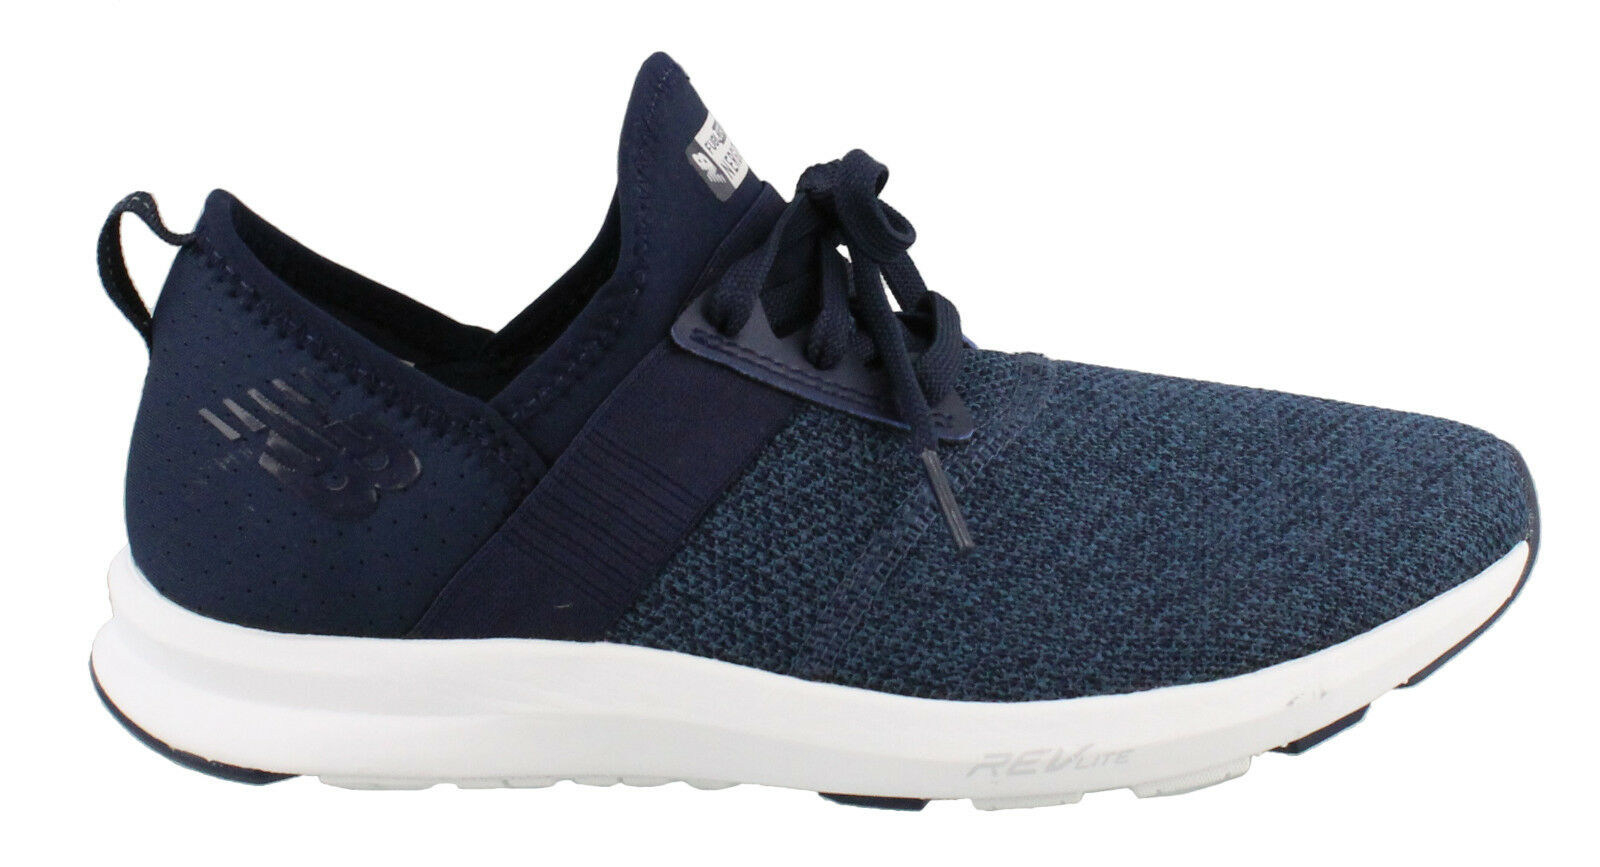 New Balance FuelCare Nergize Navy Cross Training Sneakers Shoes sz 10 Wide NWB